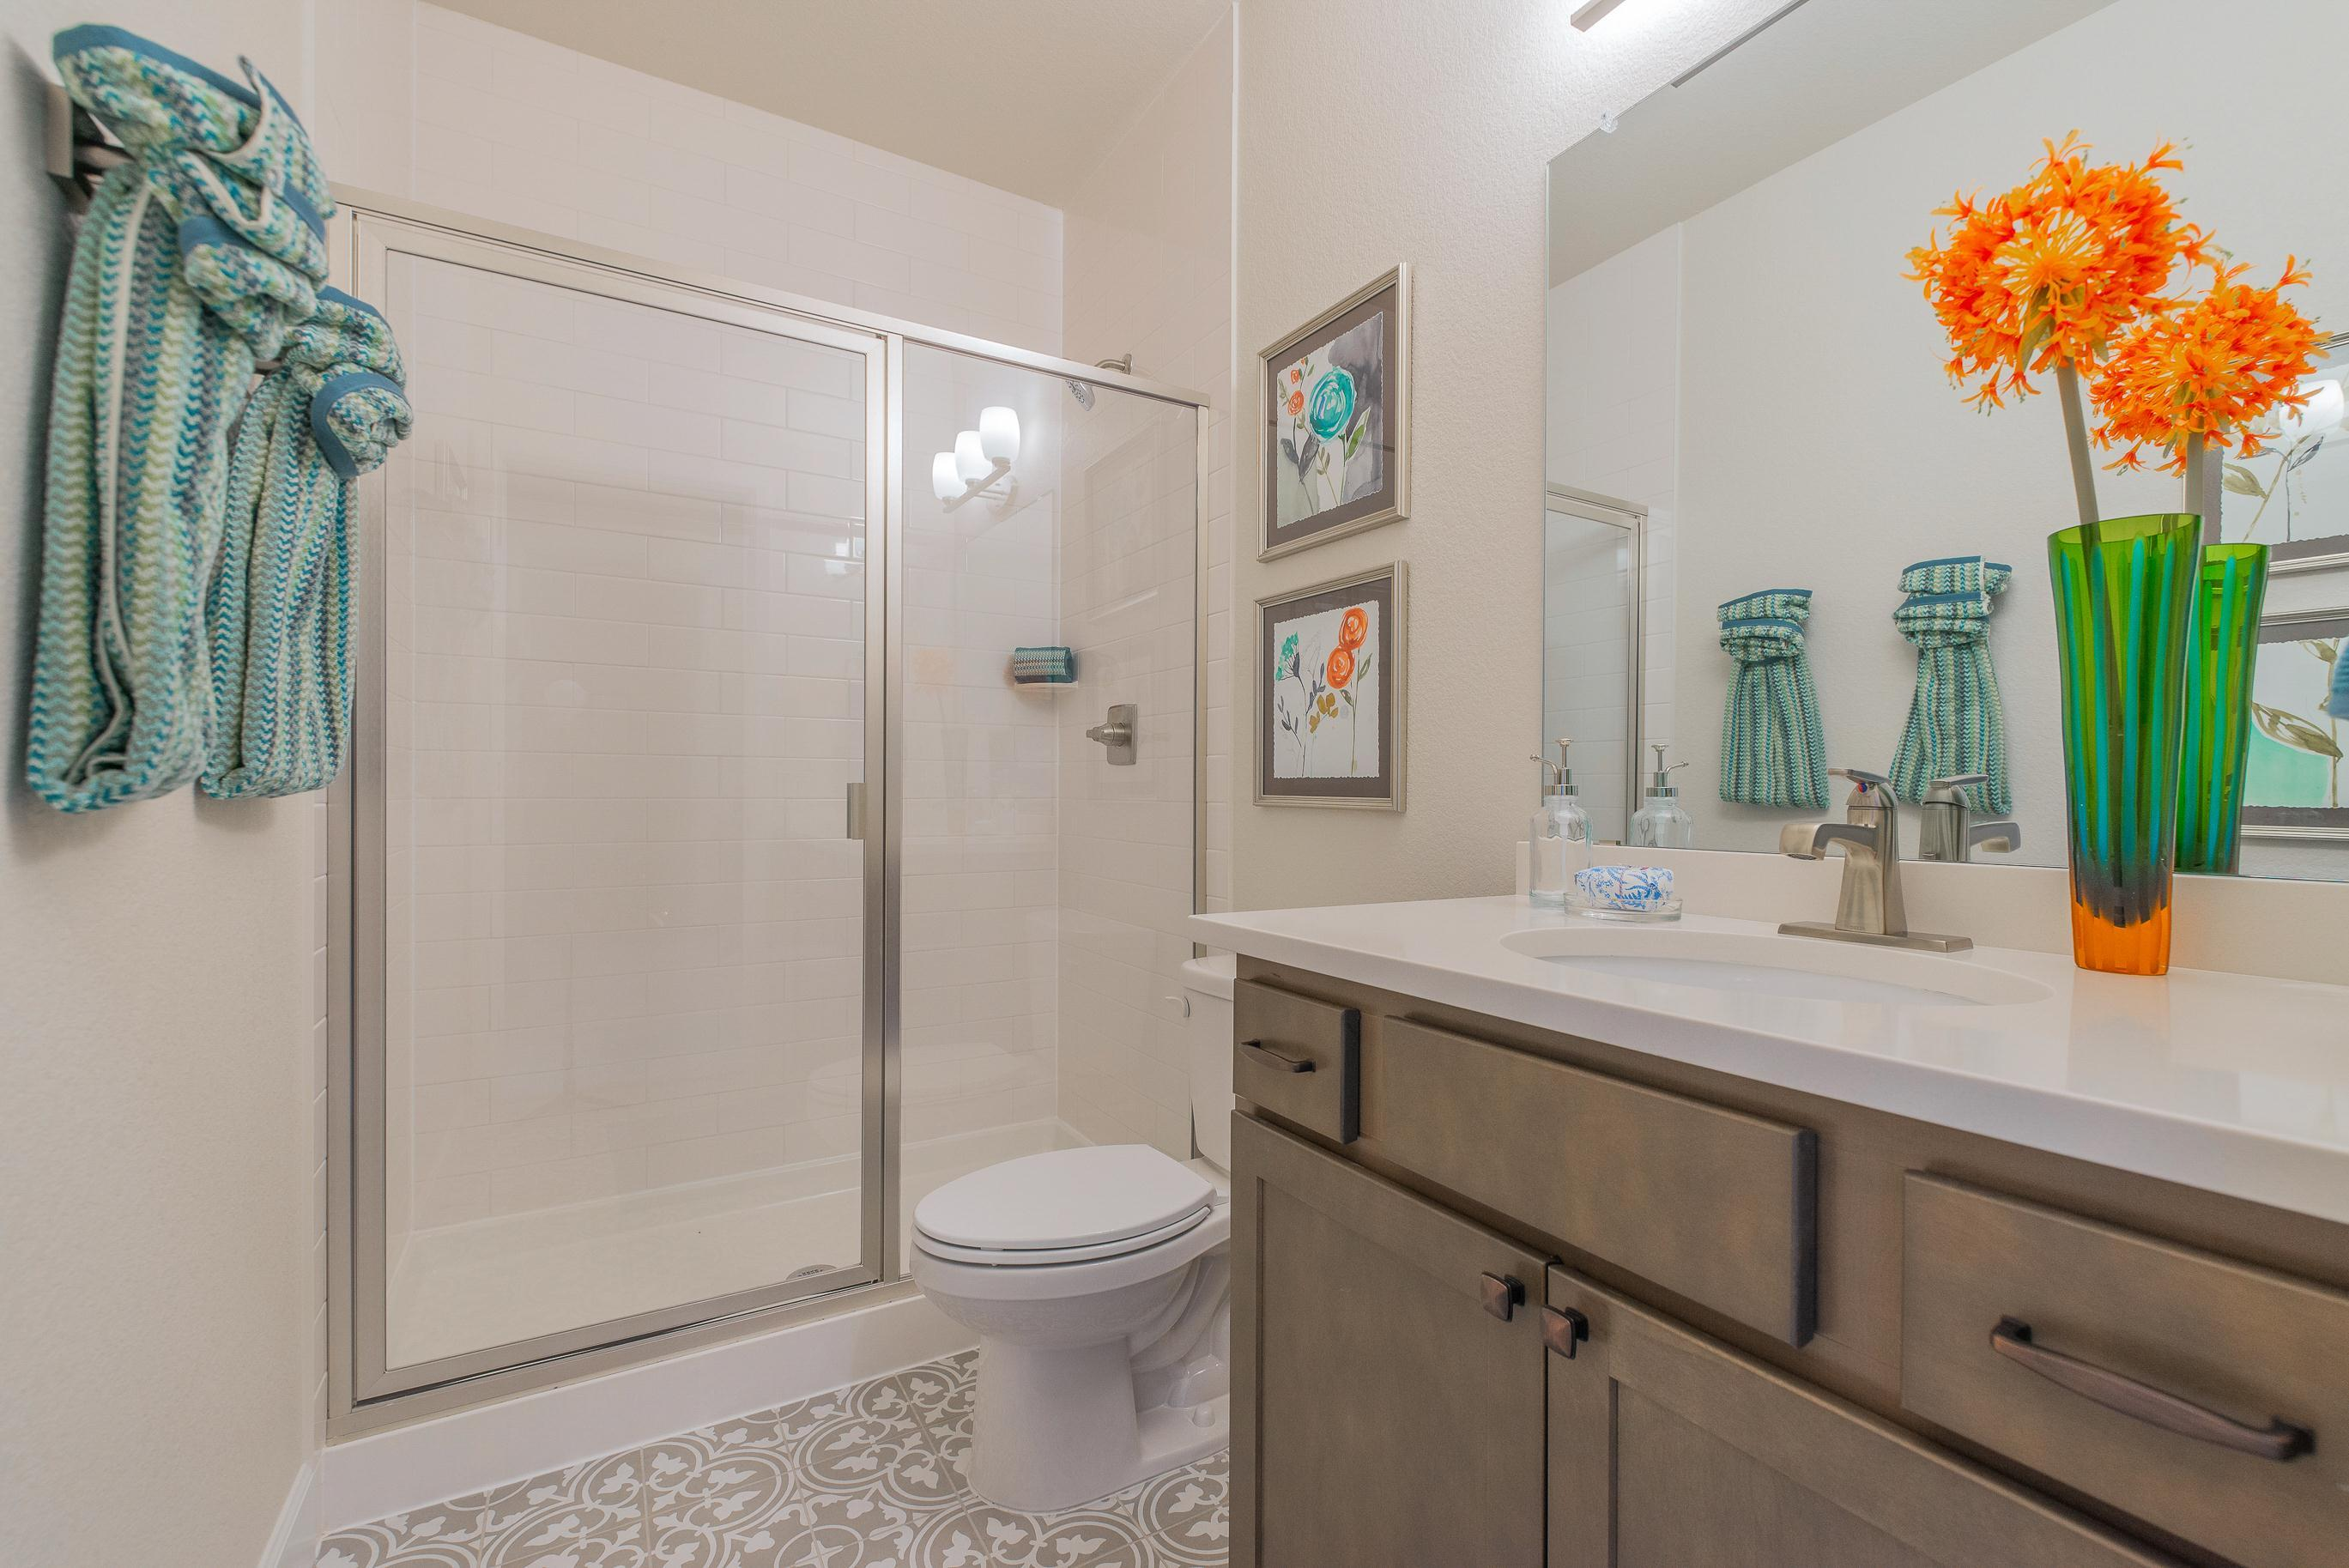 Bathroom featured in The Rose Hill By JM Weston Homes in Denver, CO